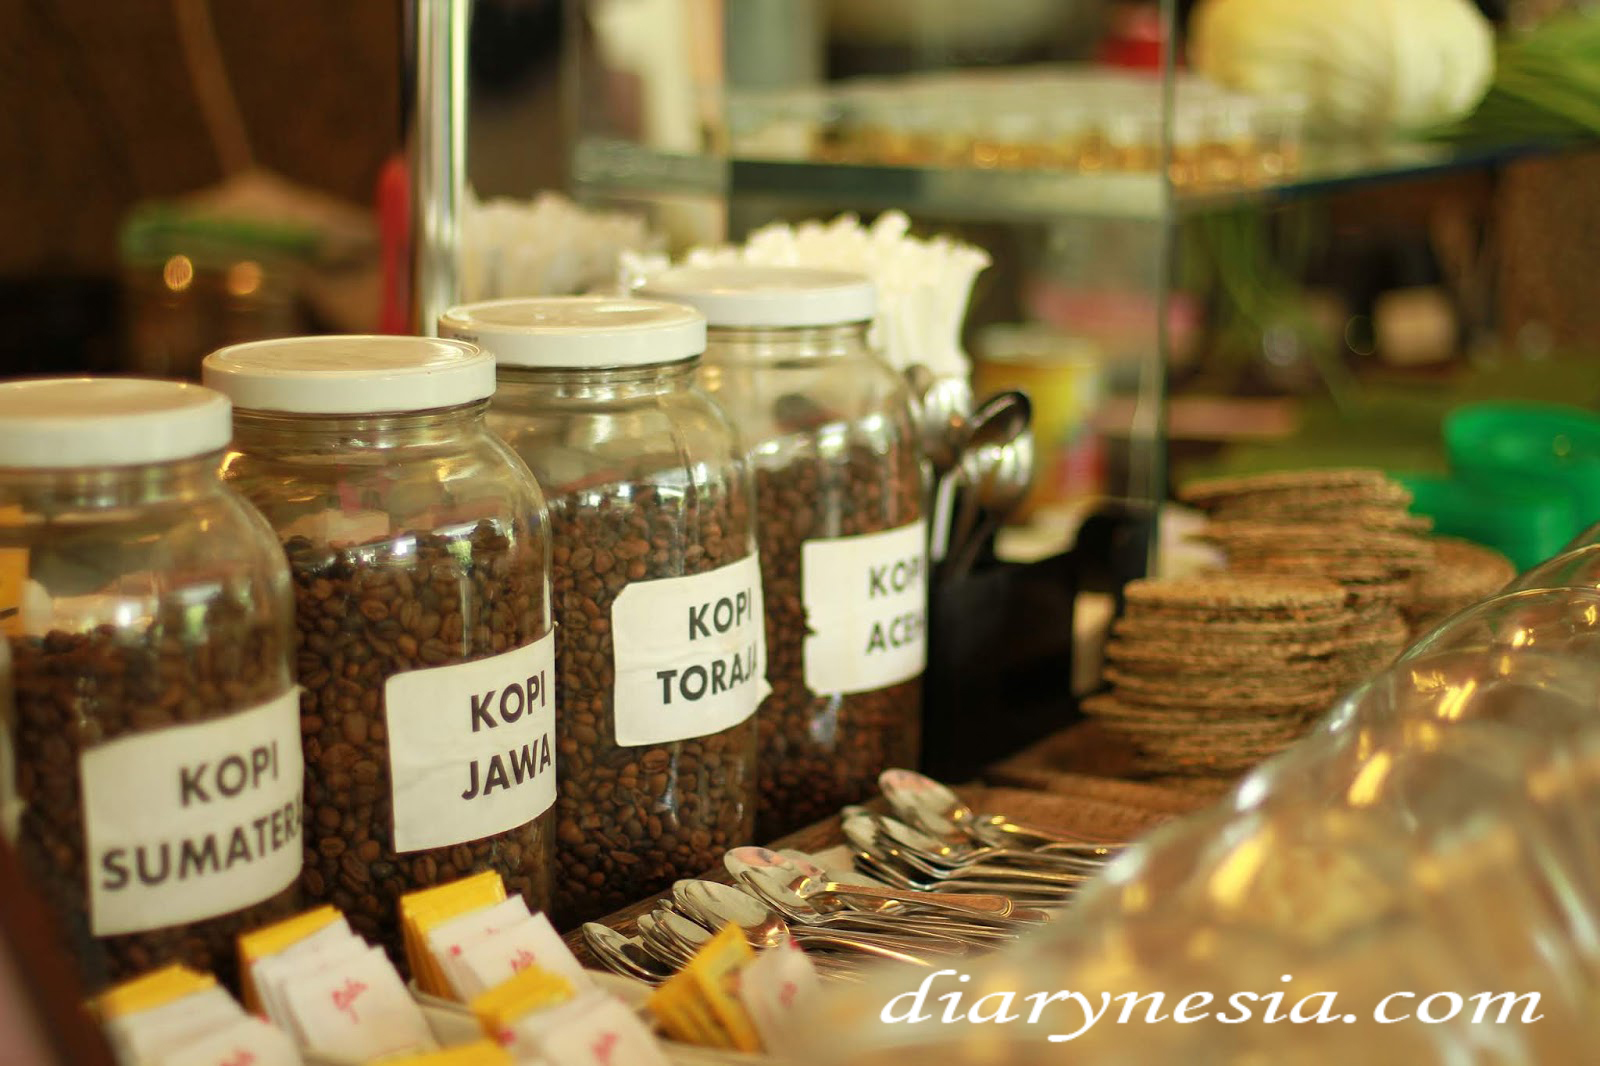 Enjoy Indonesia Coffe Shops, popular coffee beans from indonesia, indonesian cuisine, diarynesia